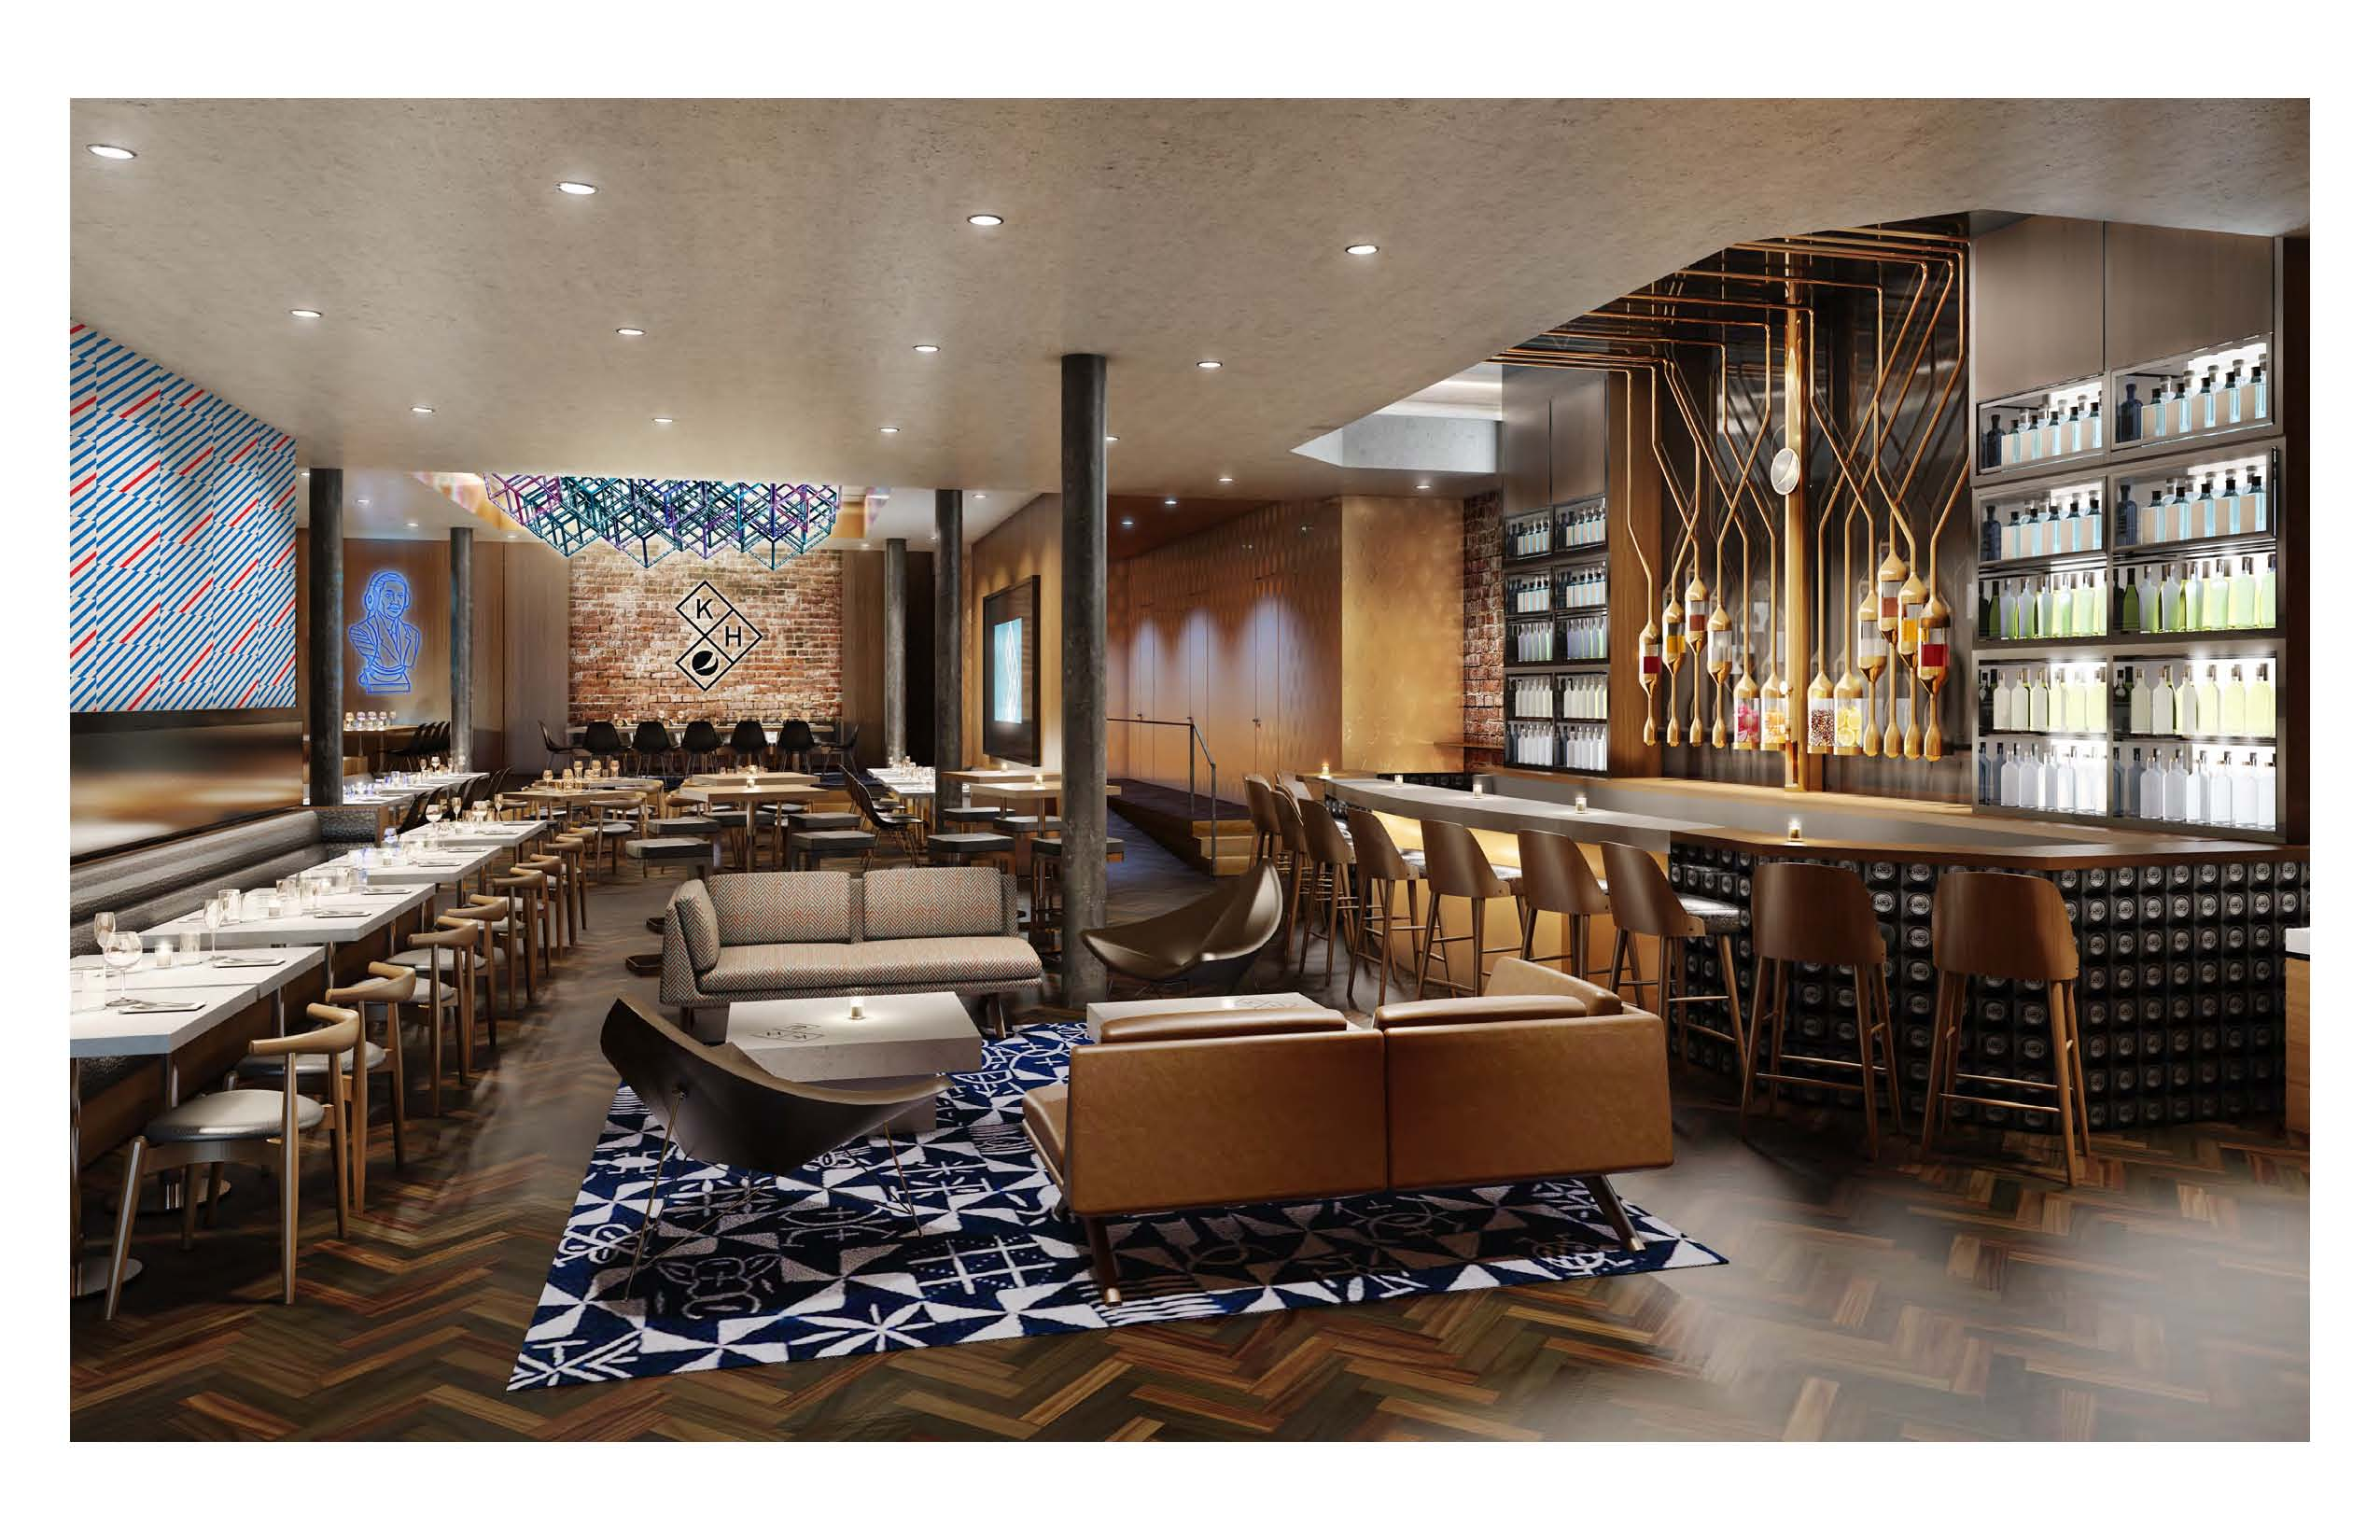 This rendering shows Kola House, an experimental restaurant that Pepsi is opening this spring in New York City.